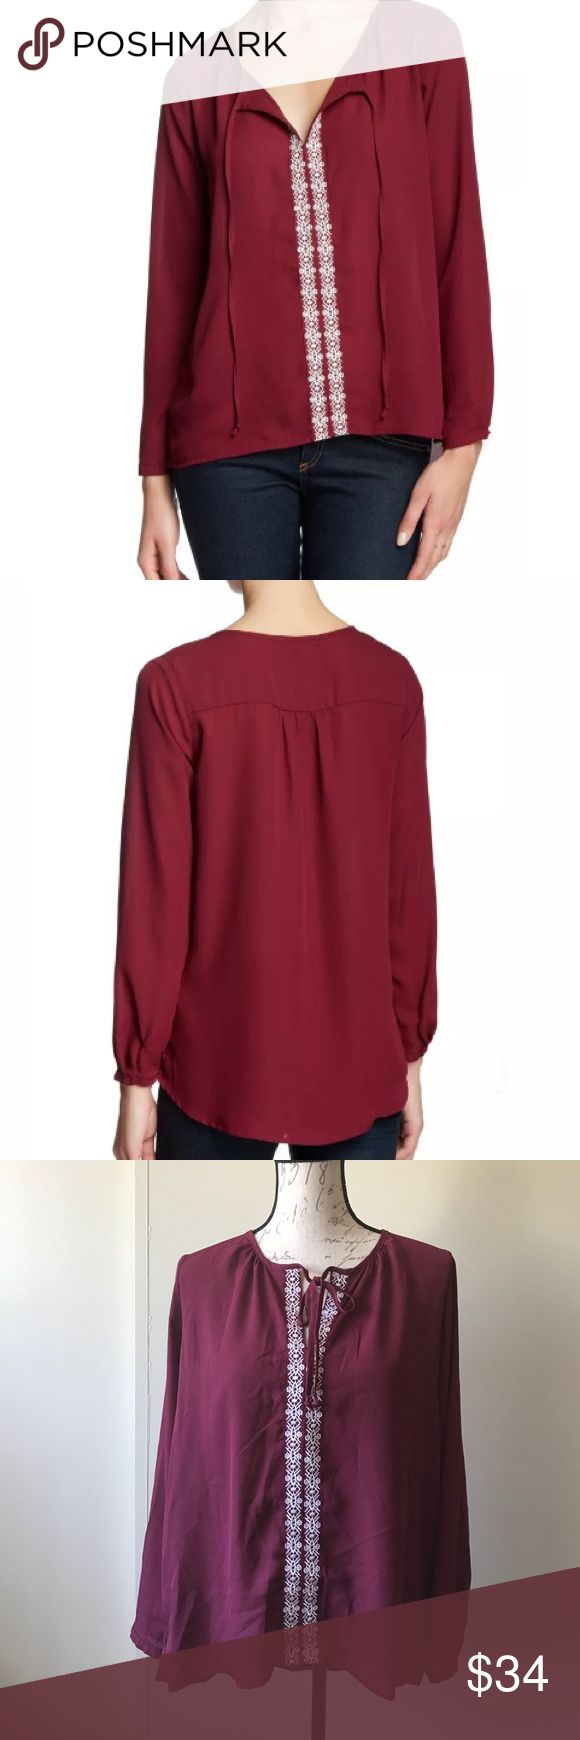 Harlowe & Graham Boho Style Hi-Lo Blouse Burgundy 3/4 Sleeve Peasant Blouse. Embroidered detail. 100% Polyester. Tie front. Bundle for discounts! Thank you for shopping my closet! Harlowe & Graham Tops Blouses